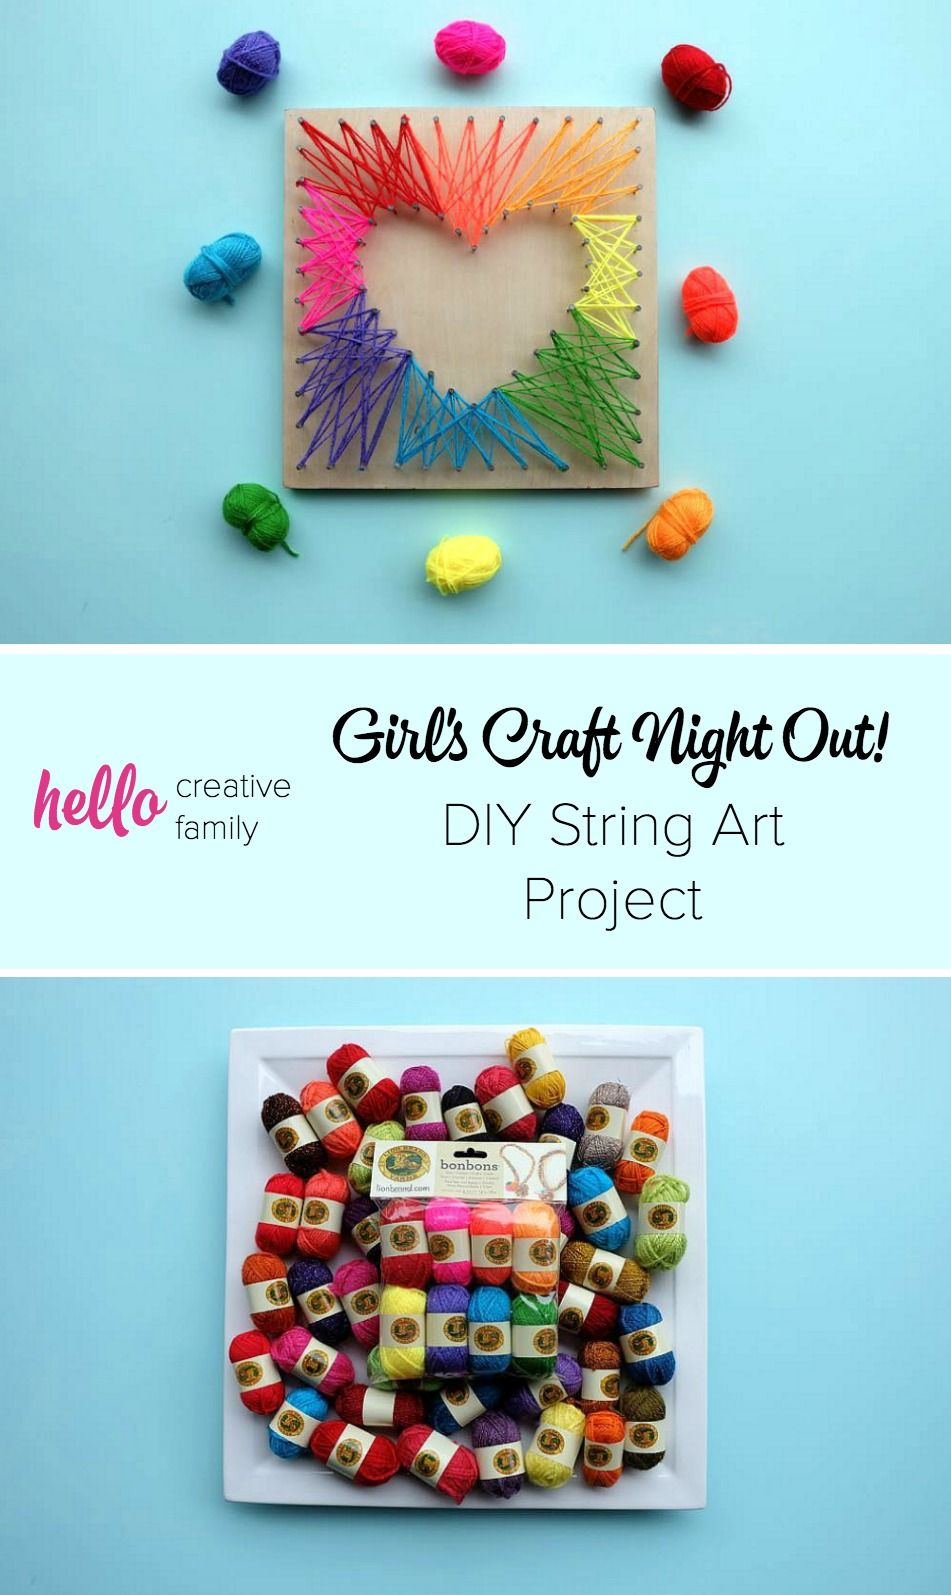 3 Easy Diy Storage Ideas For Small Kitchen: Girlfriend's Craft Night: DIY String Art Projects